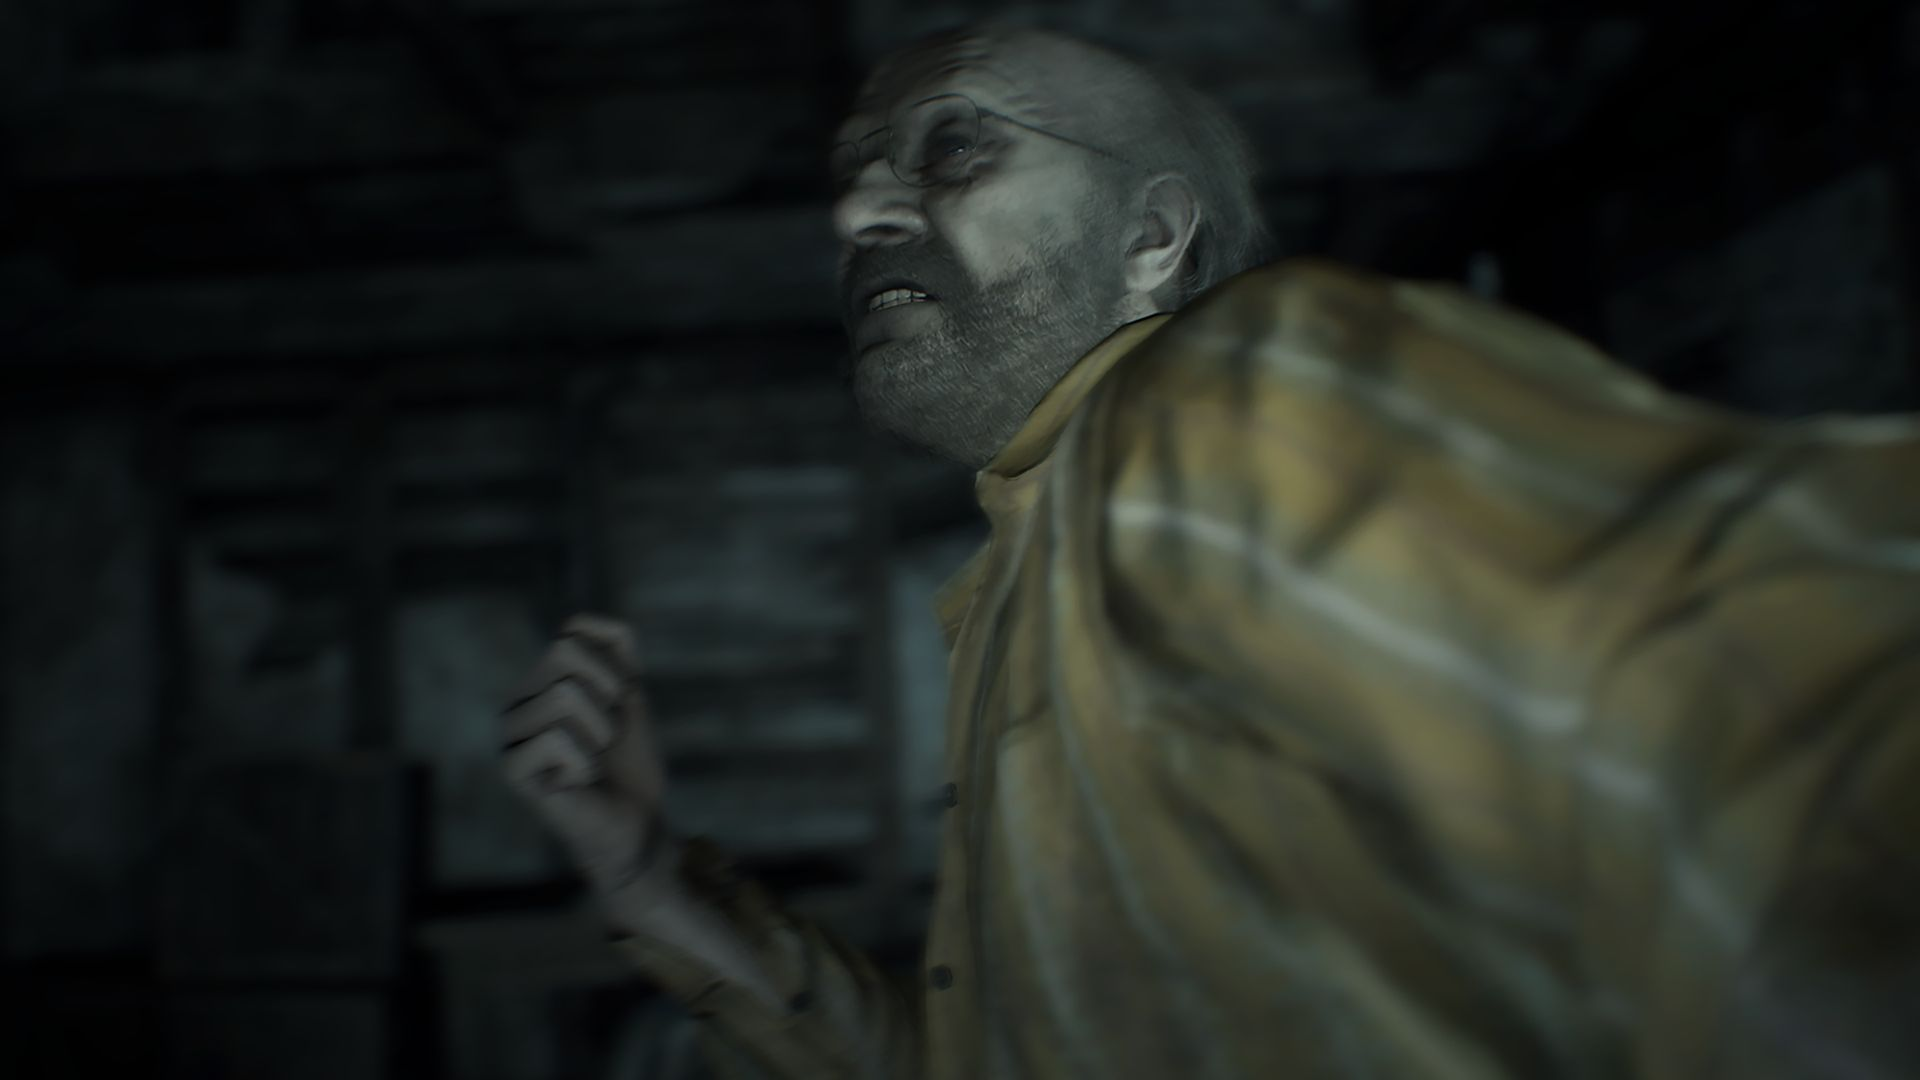 RESIDENT EVIL 7 gets a new trailer with COMBAT, scares – demo update is out TOMORROW